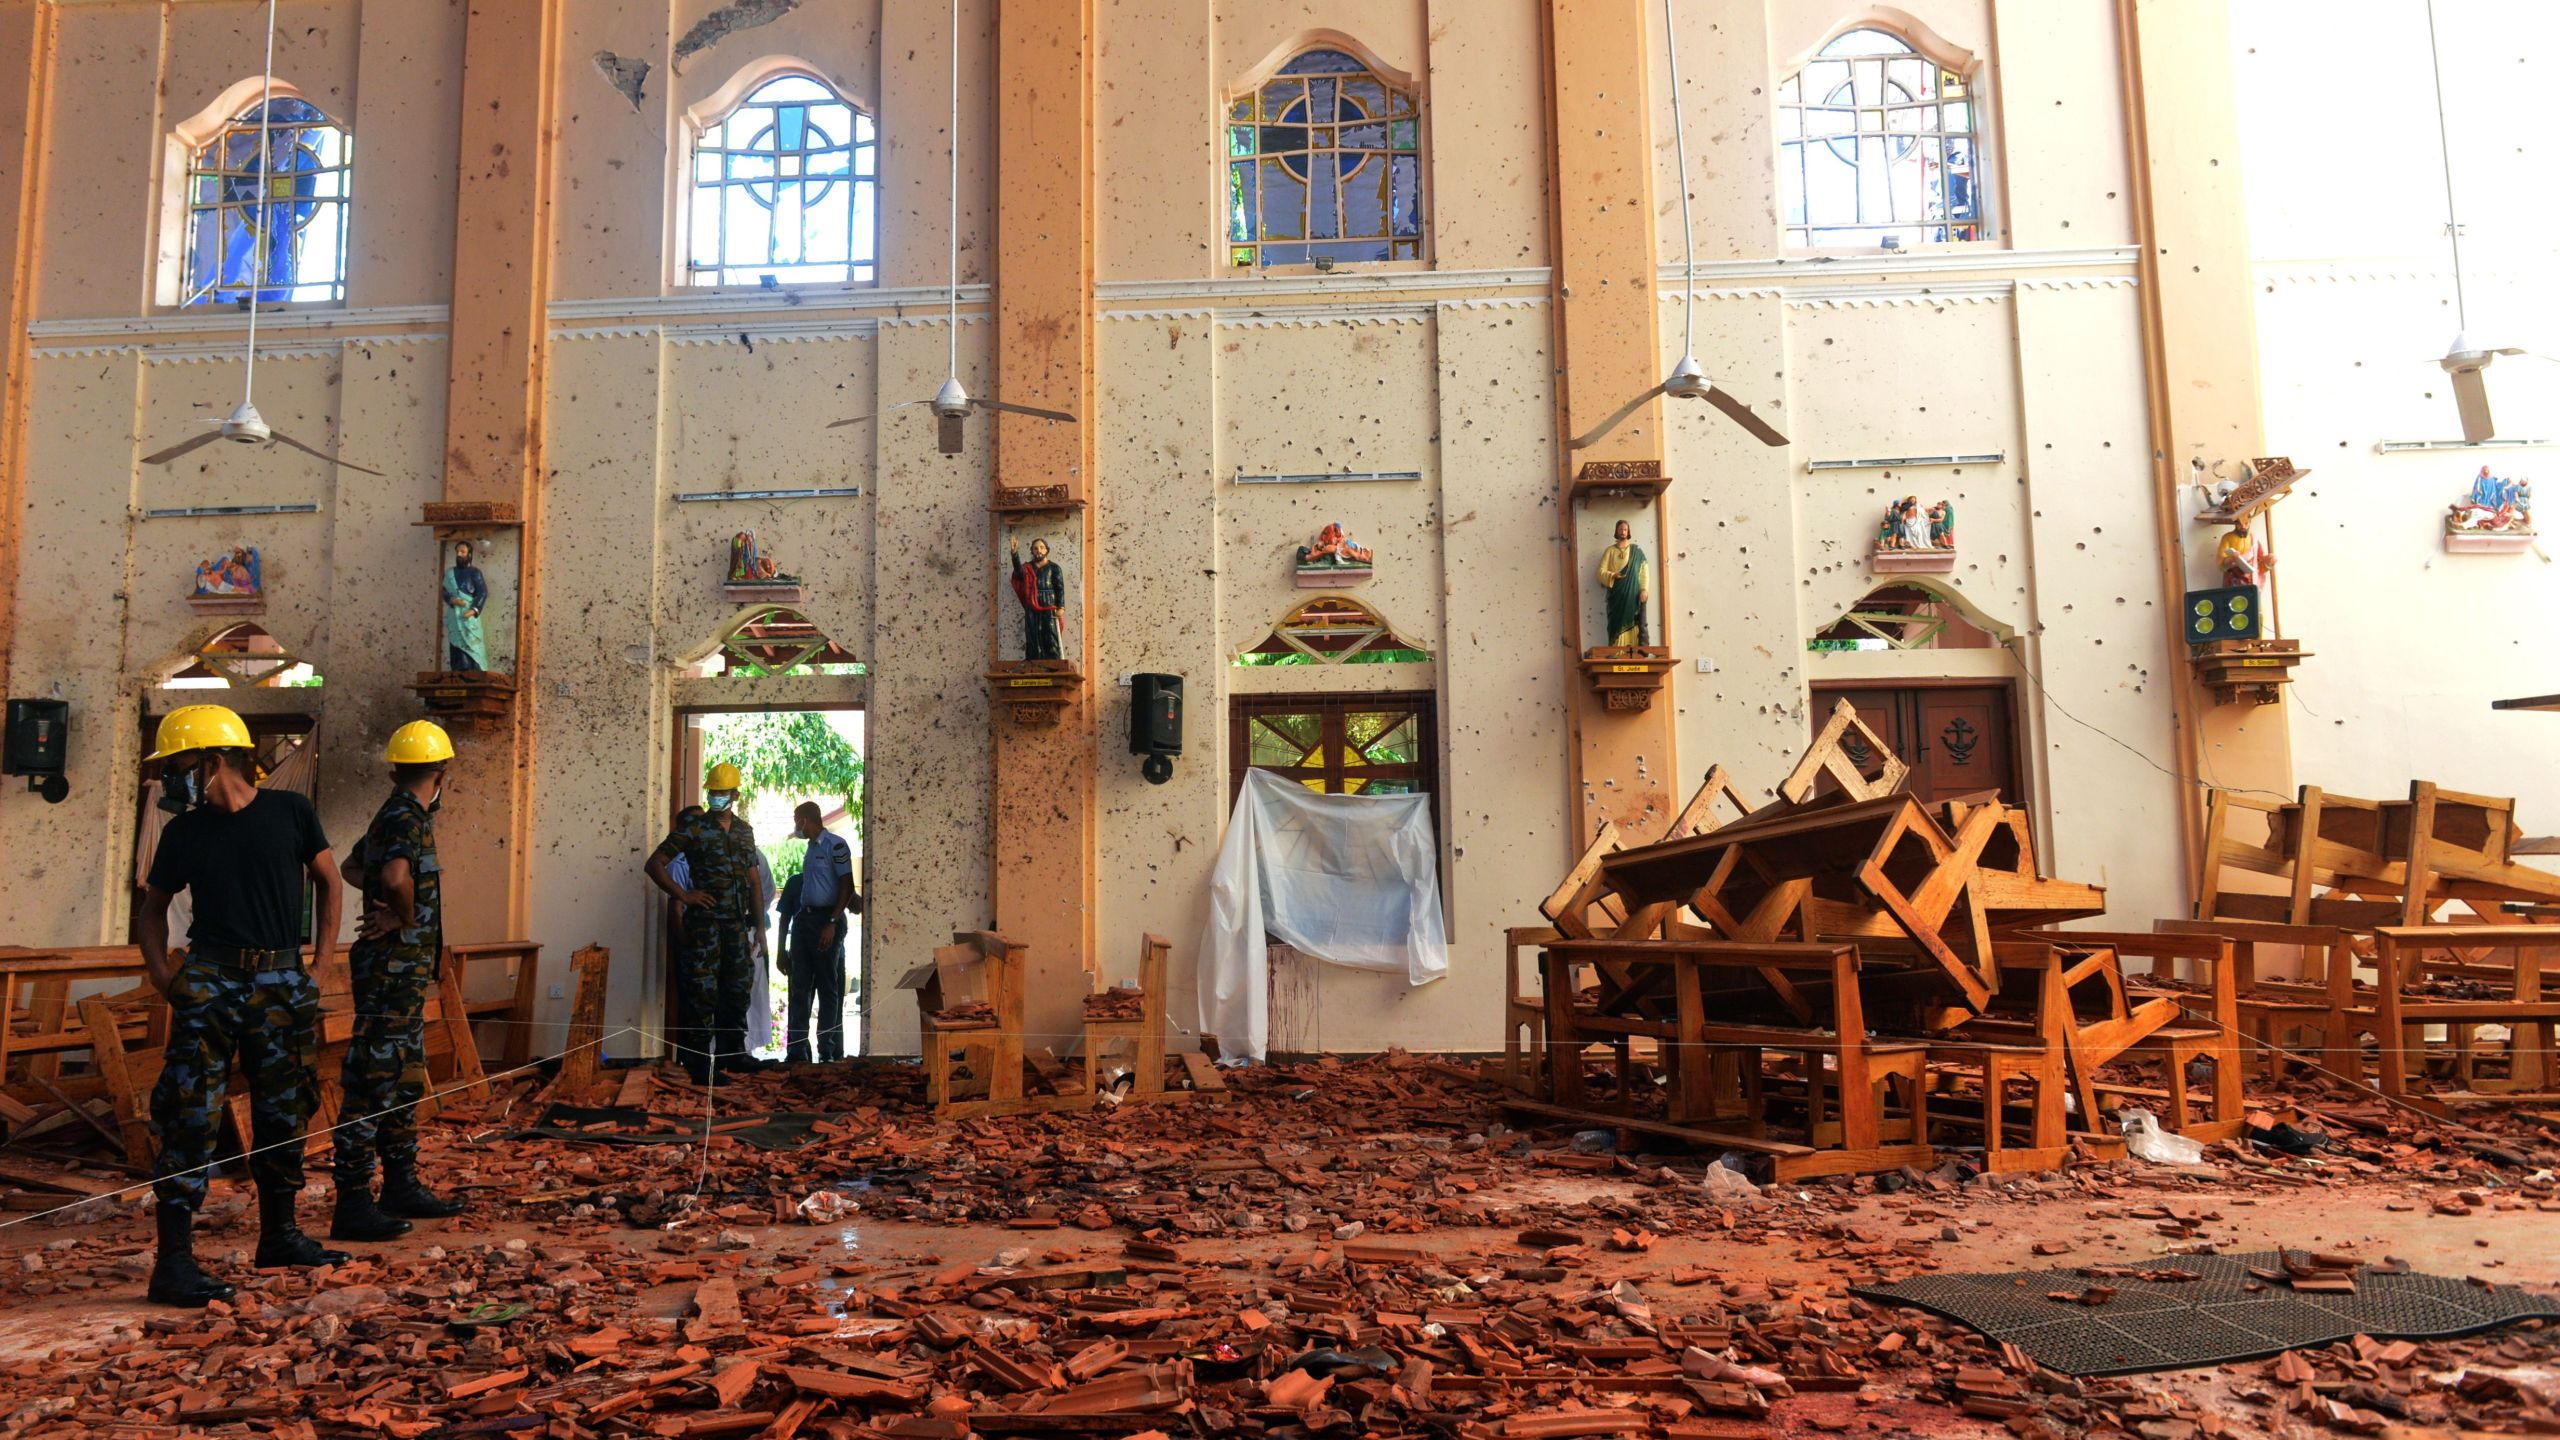 Security personnel inspect the interior of St. Sebastian's Church in Negombo on April 22, 2019. Credit: ISHARA S. KODIKARA/AFP/Getty Images)